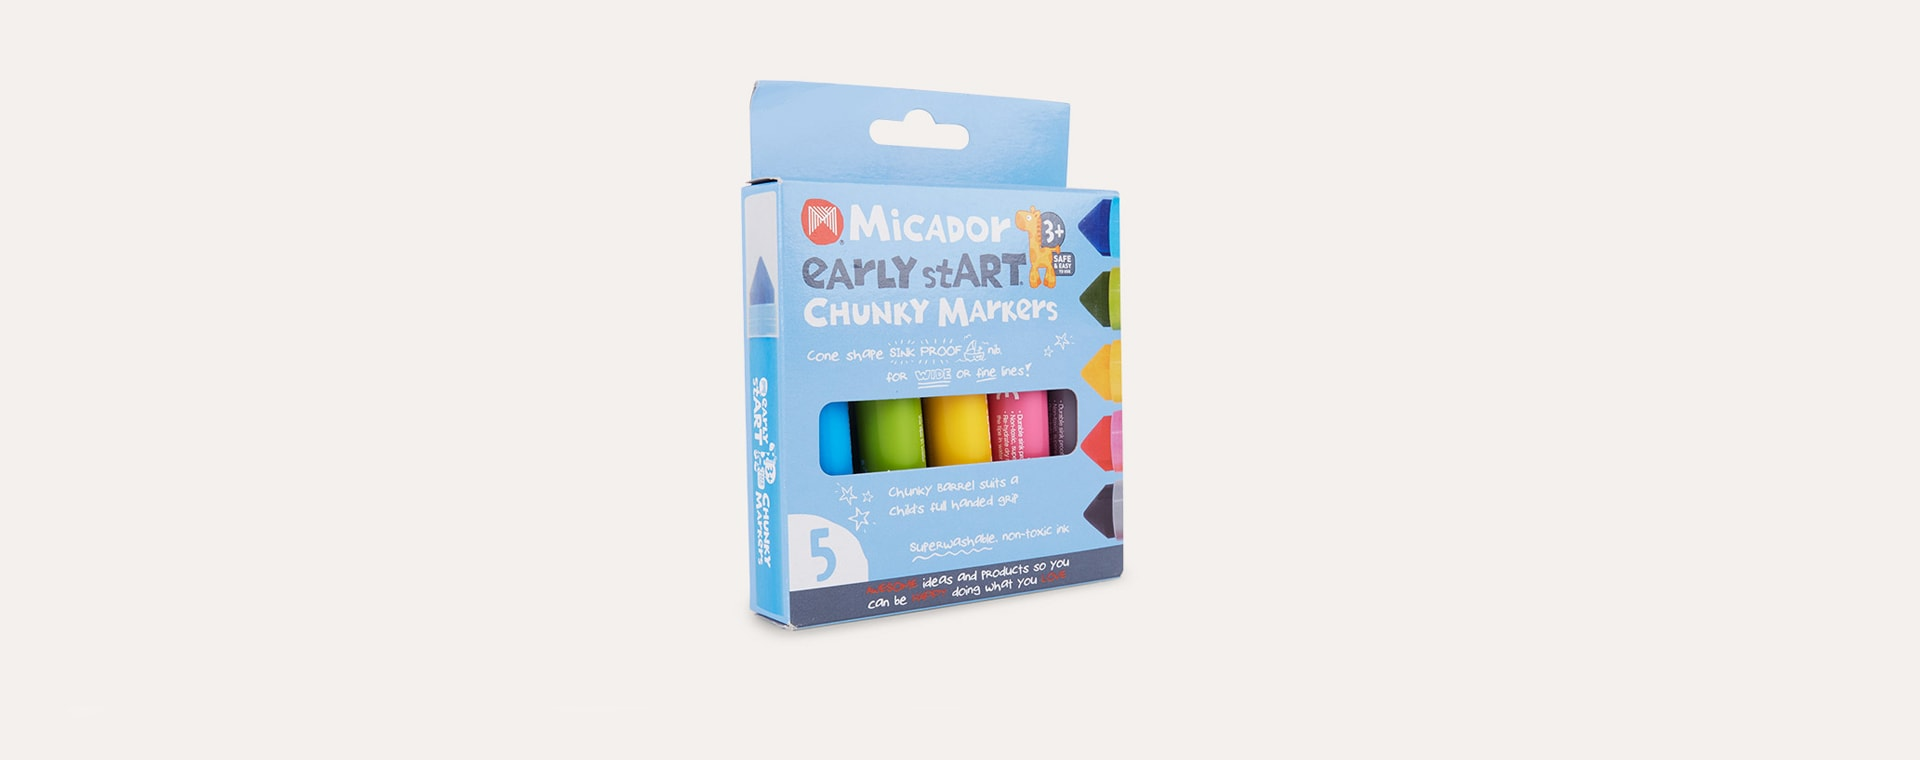 Multi Micador Early stART Chunky Markers 5 Pack